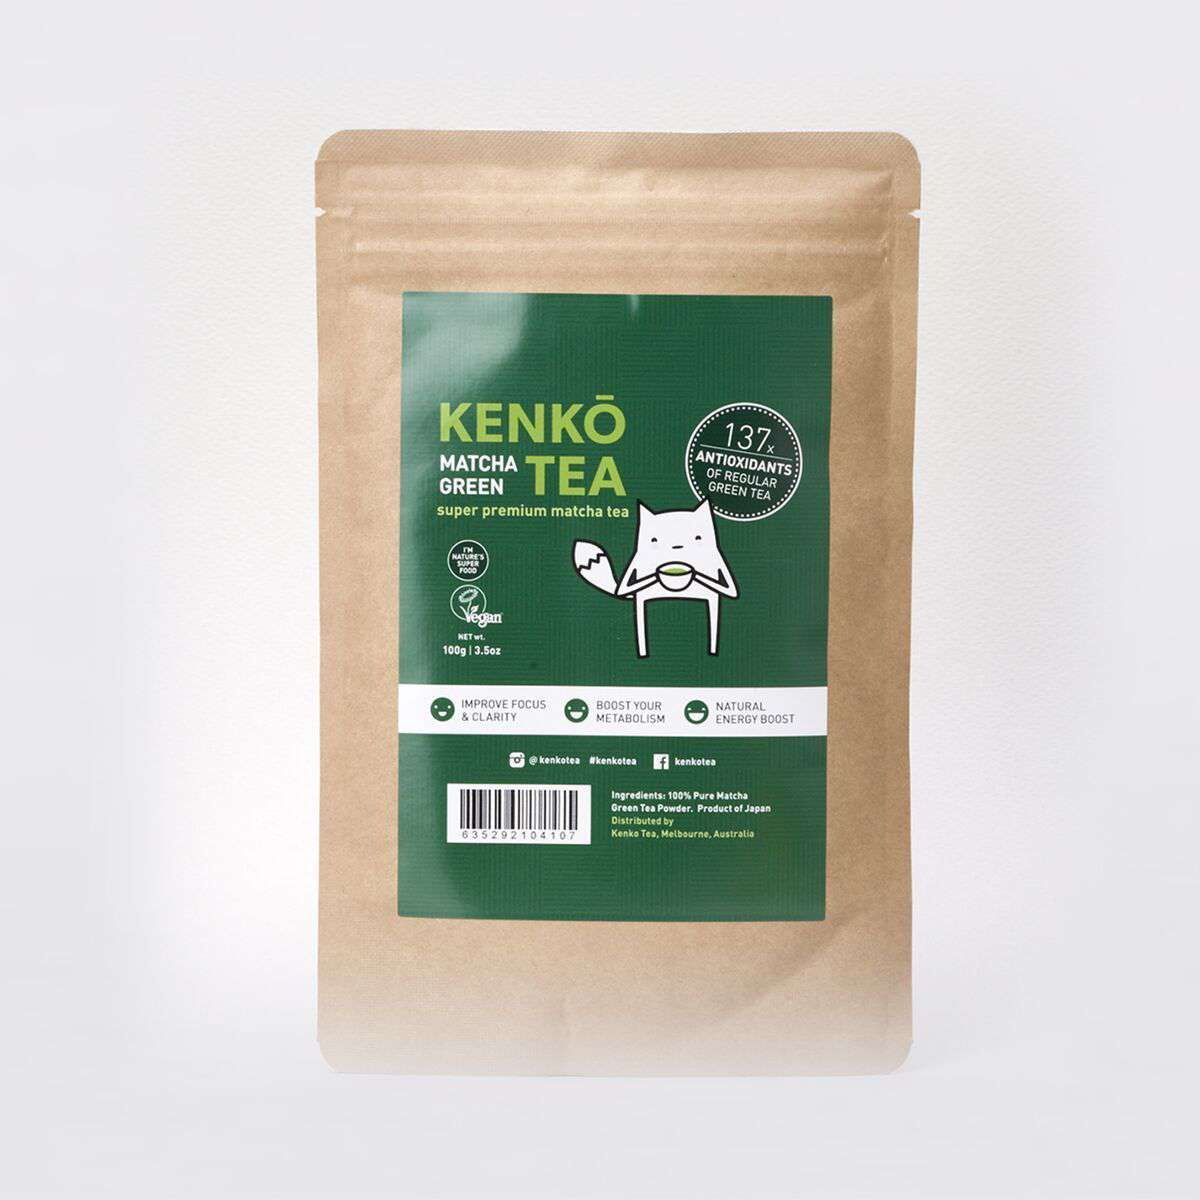 Ceremonial Grade Matcha Powder - 100g Bag